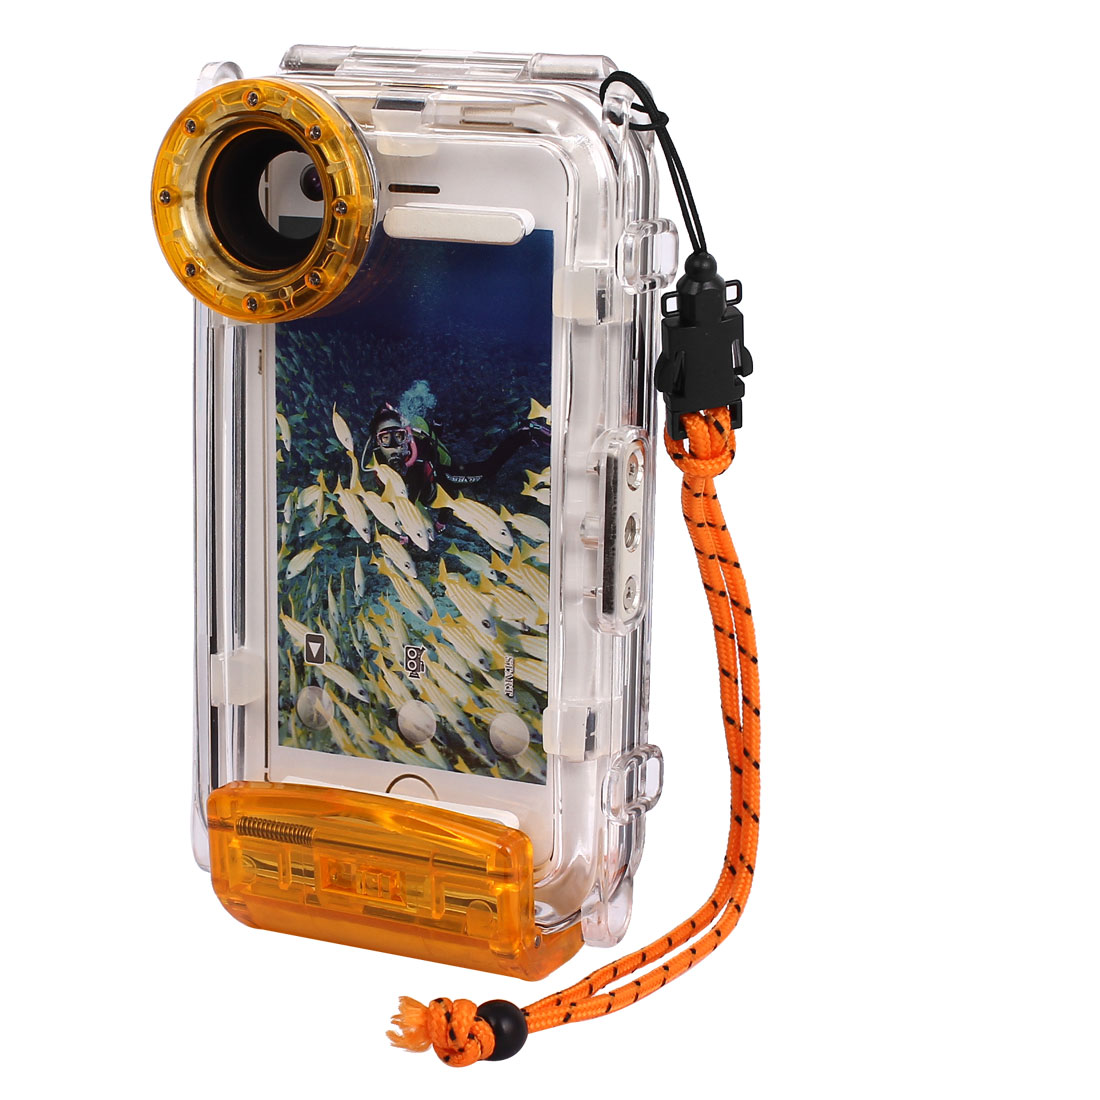 Waterproof Photo Housing Underwater Case Orange for iPhone 5/5s/5c